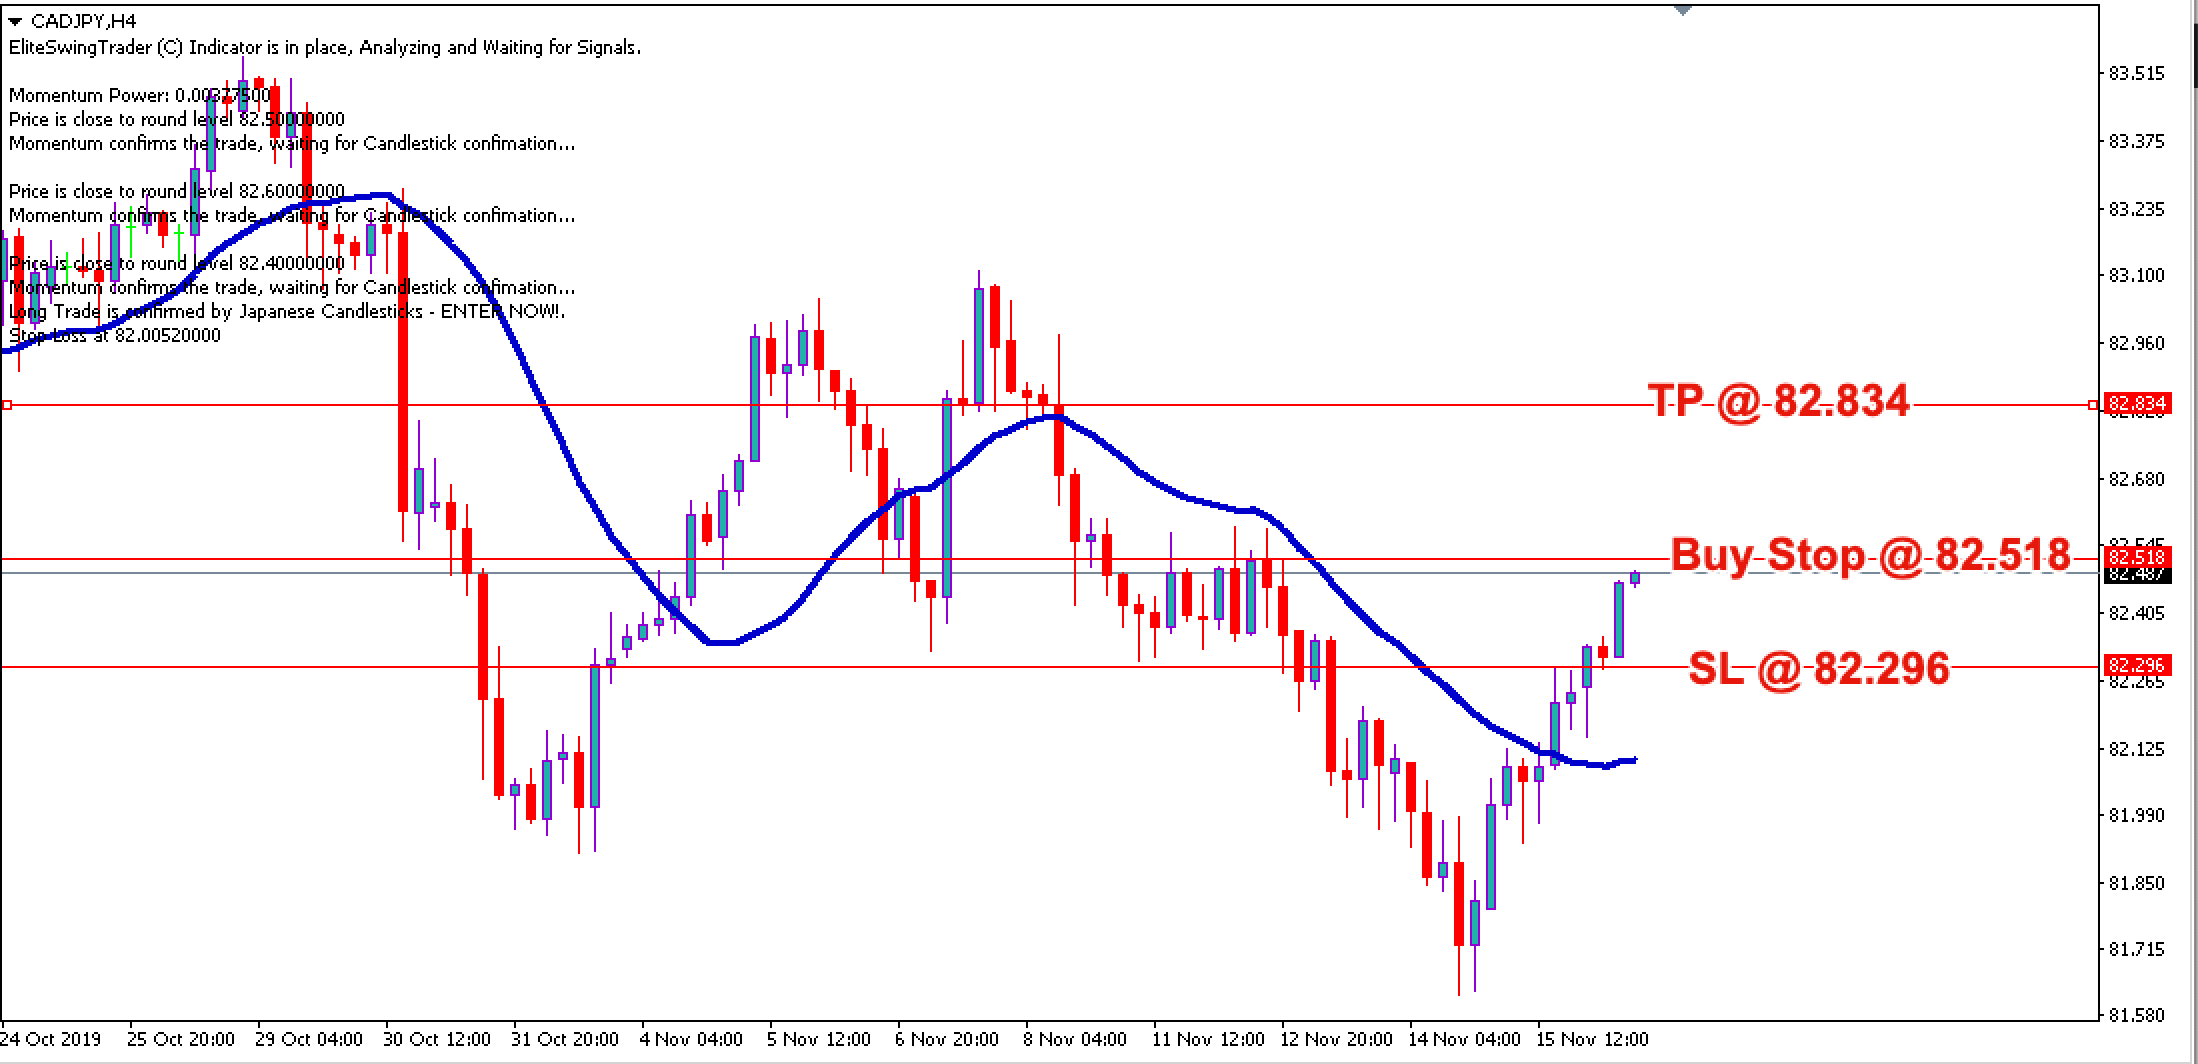 Free Forex Trade Signals CADJPY – 18th Nov 2019